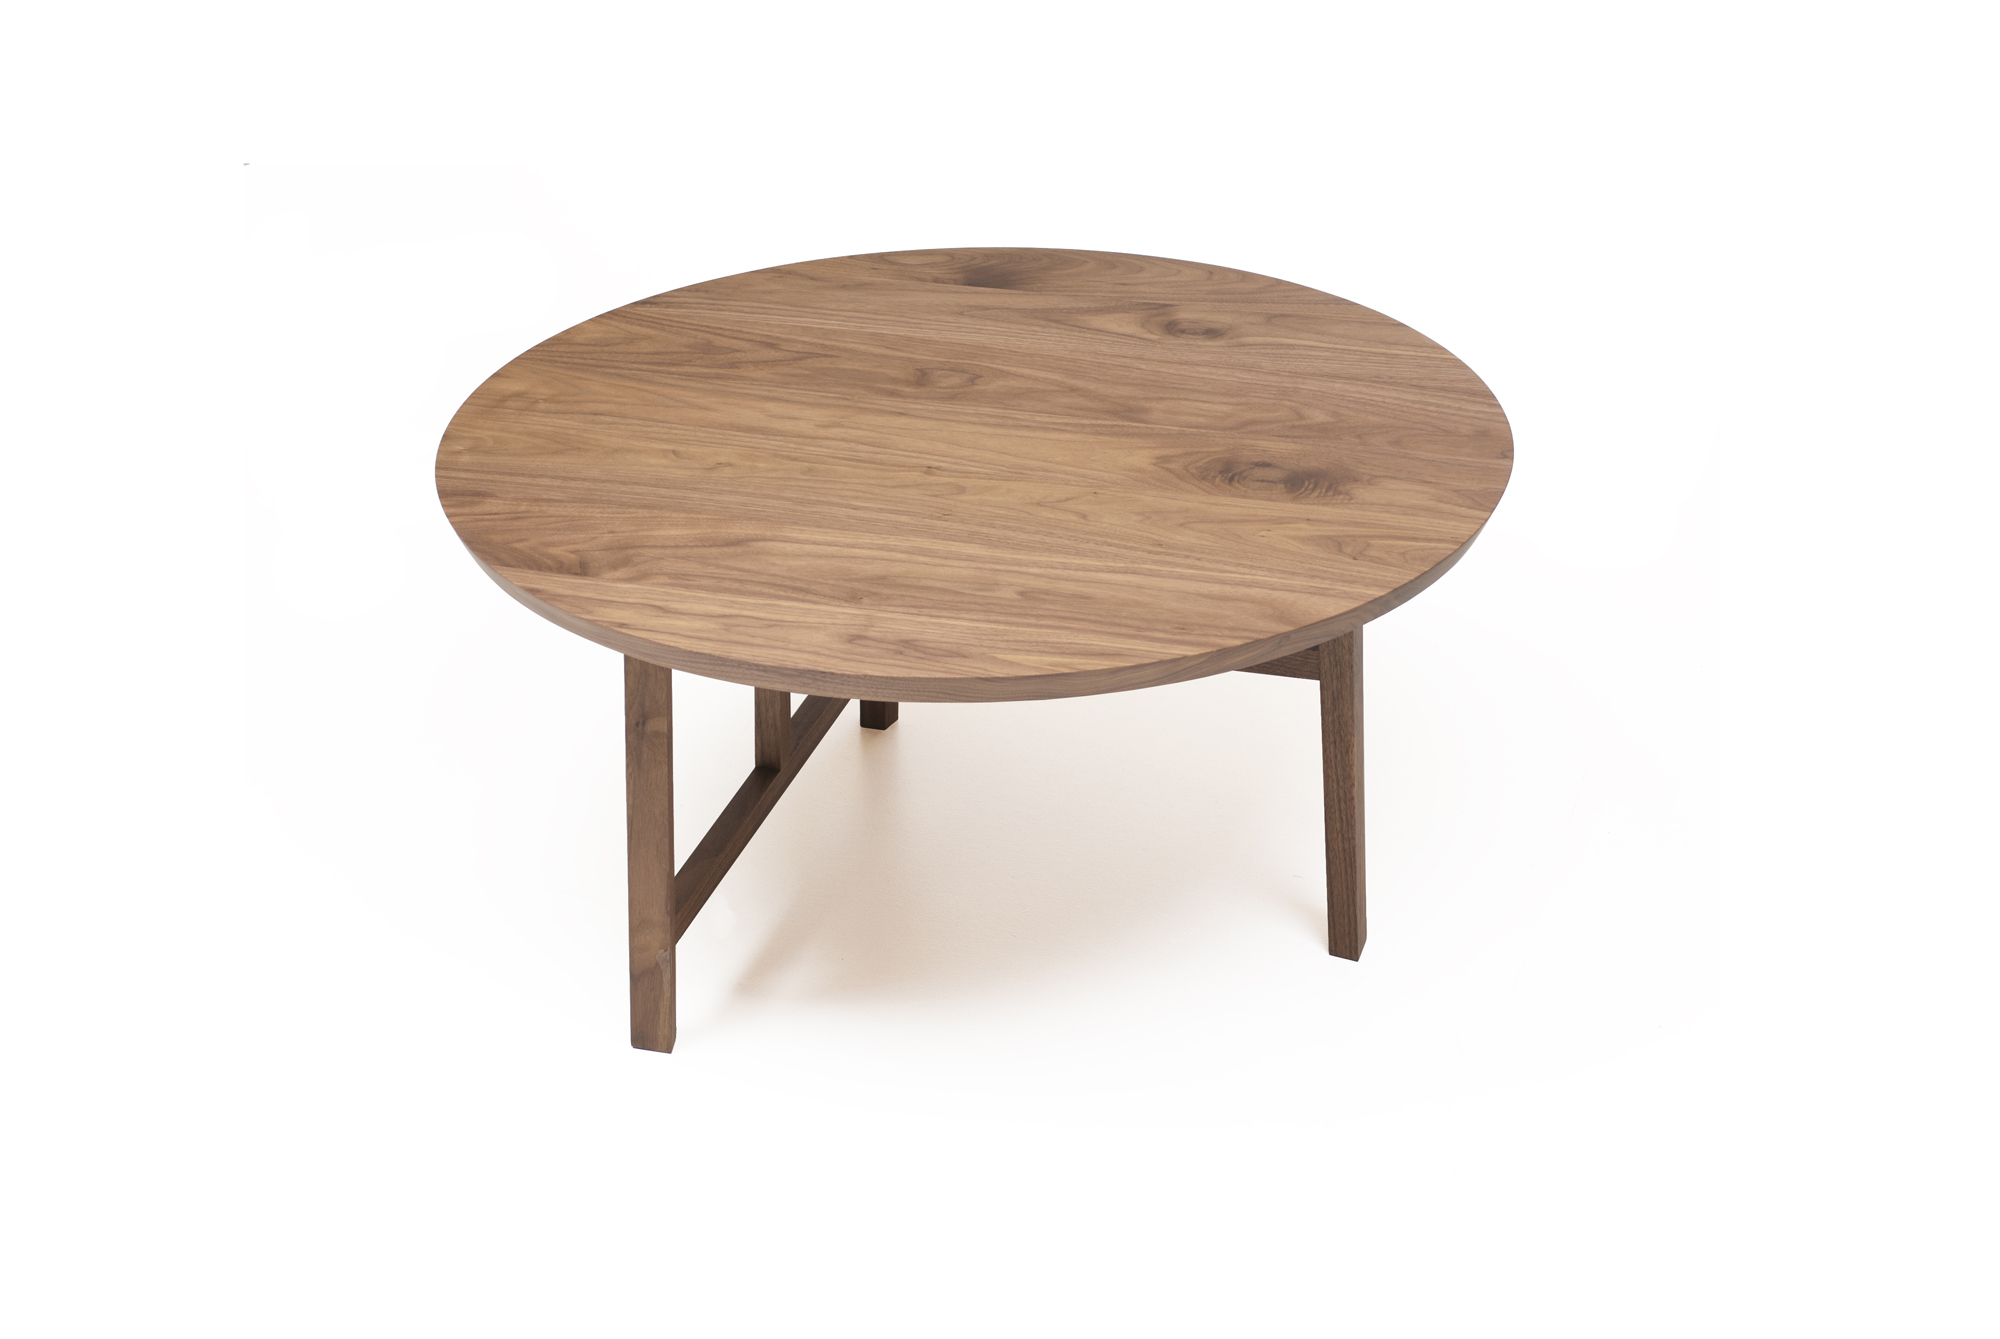 small-round-coffee-table-754m-trio-round-coffee-table-discount-coffee-tables-round-coffee-tables-living-room (Image 13 of 18)